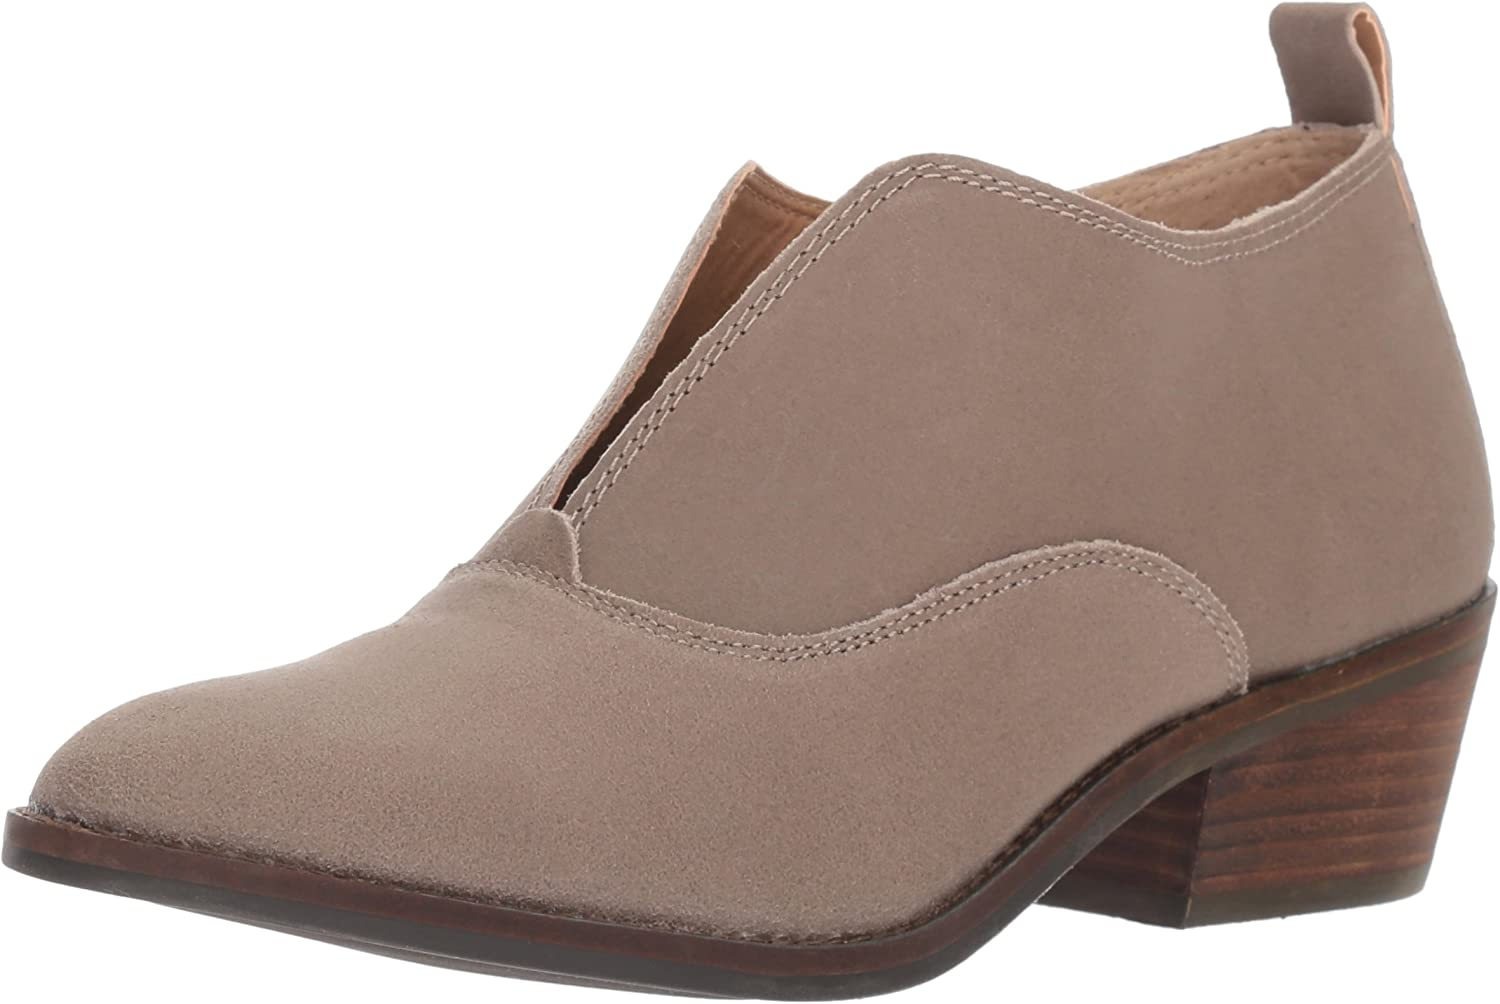 Lucky Brand Women's Fimberly shoes Brown